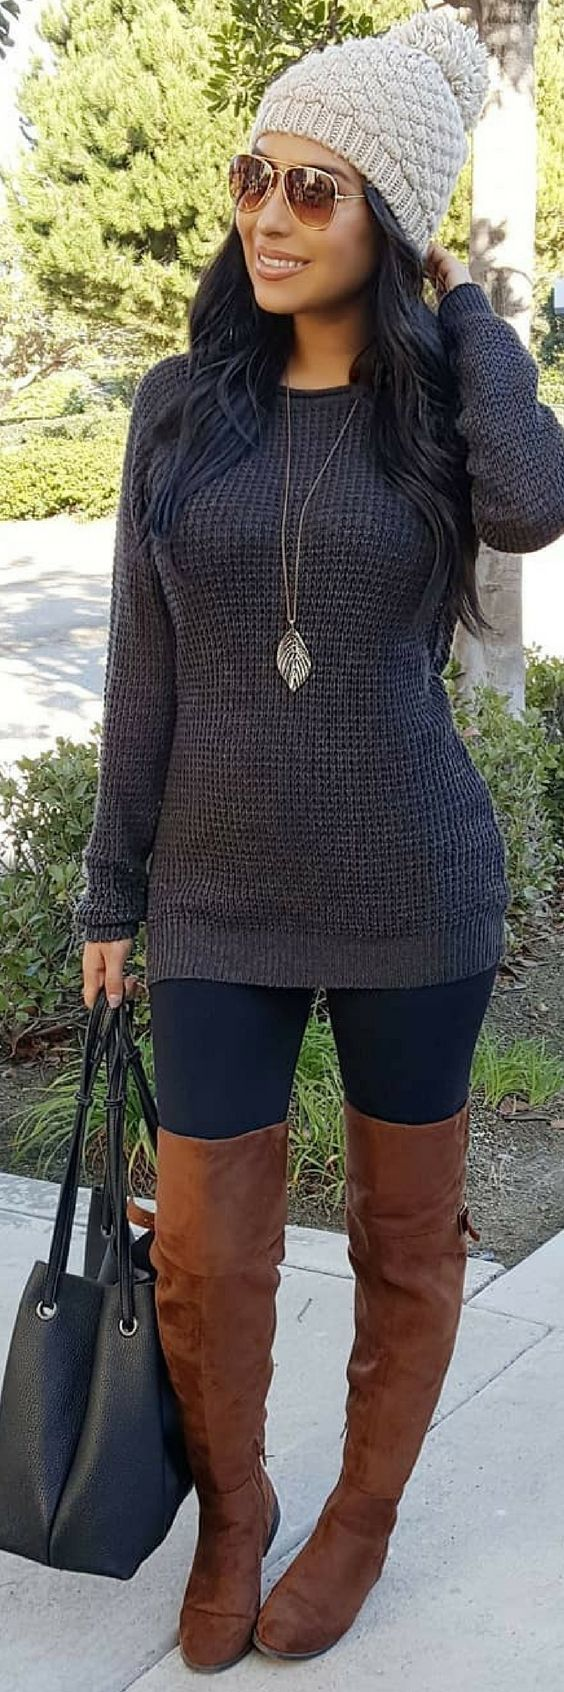 How To Style 10 Of The Most Charming Winter Outfits https://ecstasymodels.blog/2017/12/19/style-10-charming-winter-outfits/ #casualfalloutfits